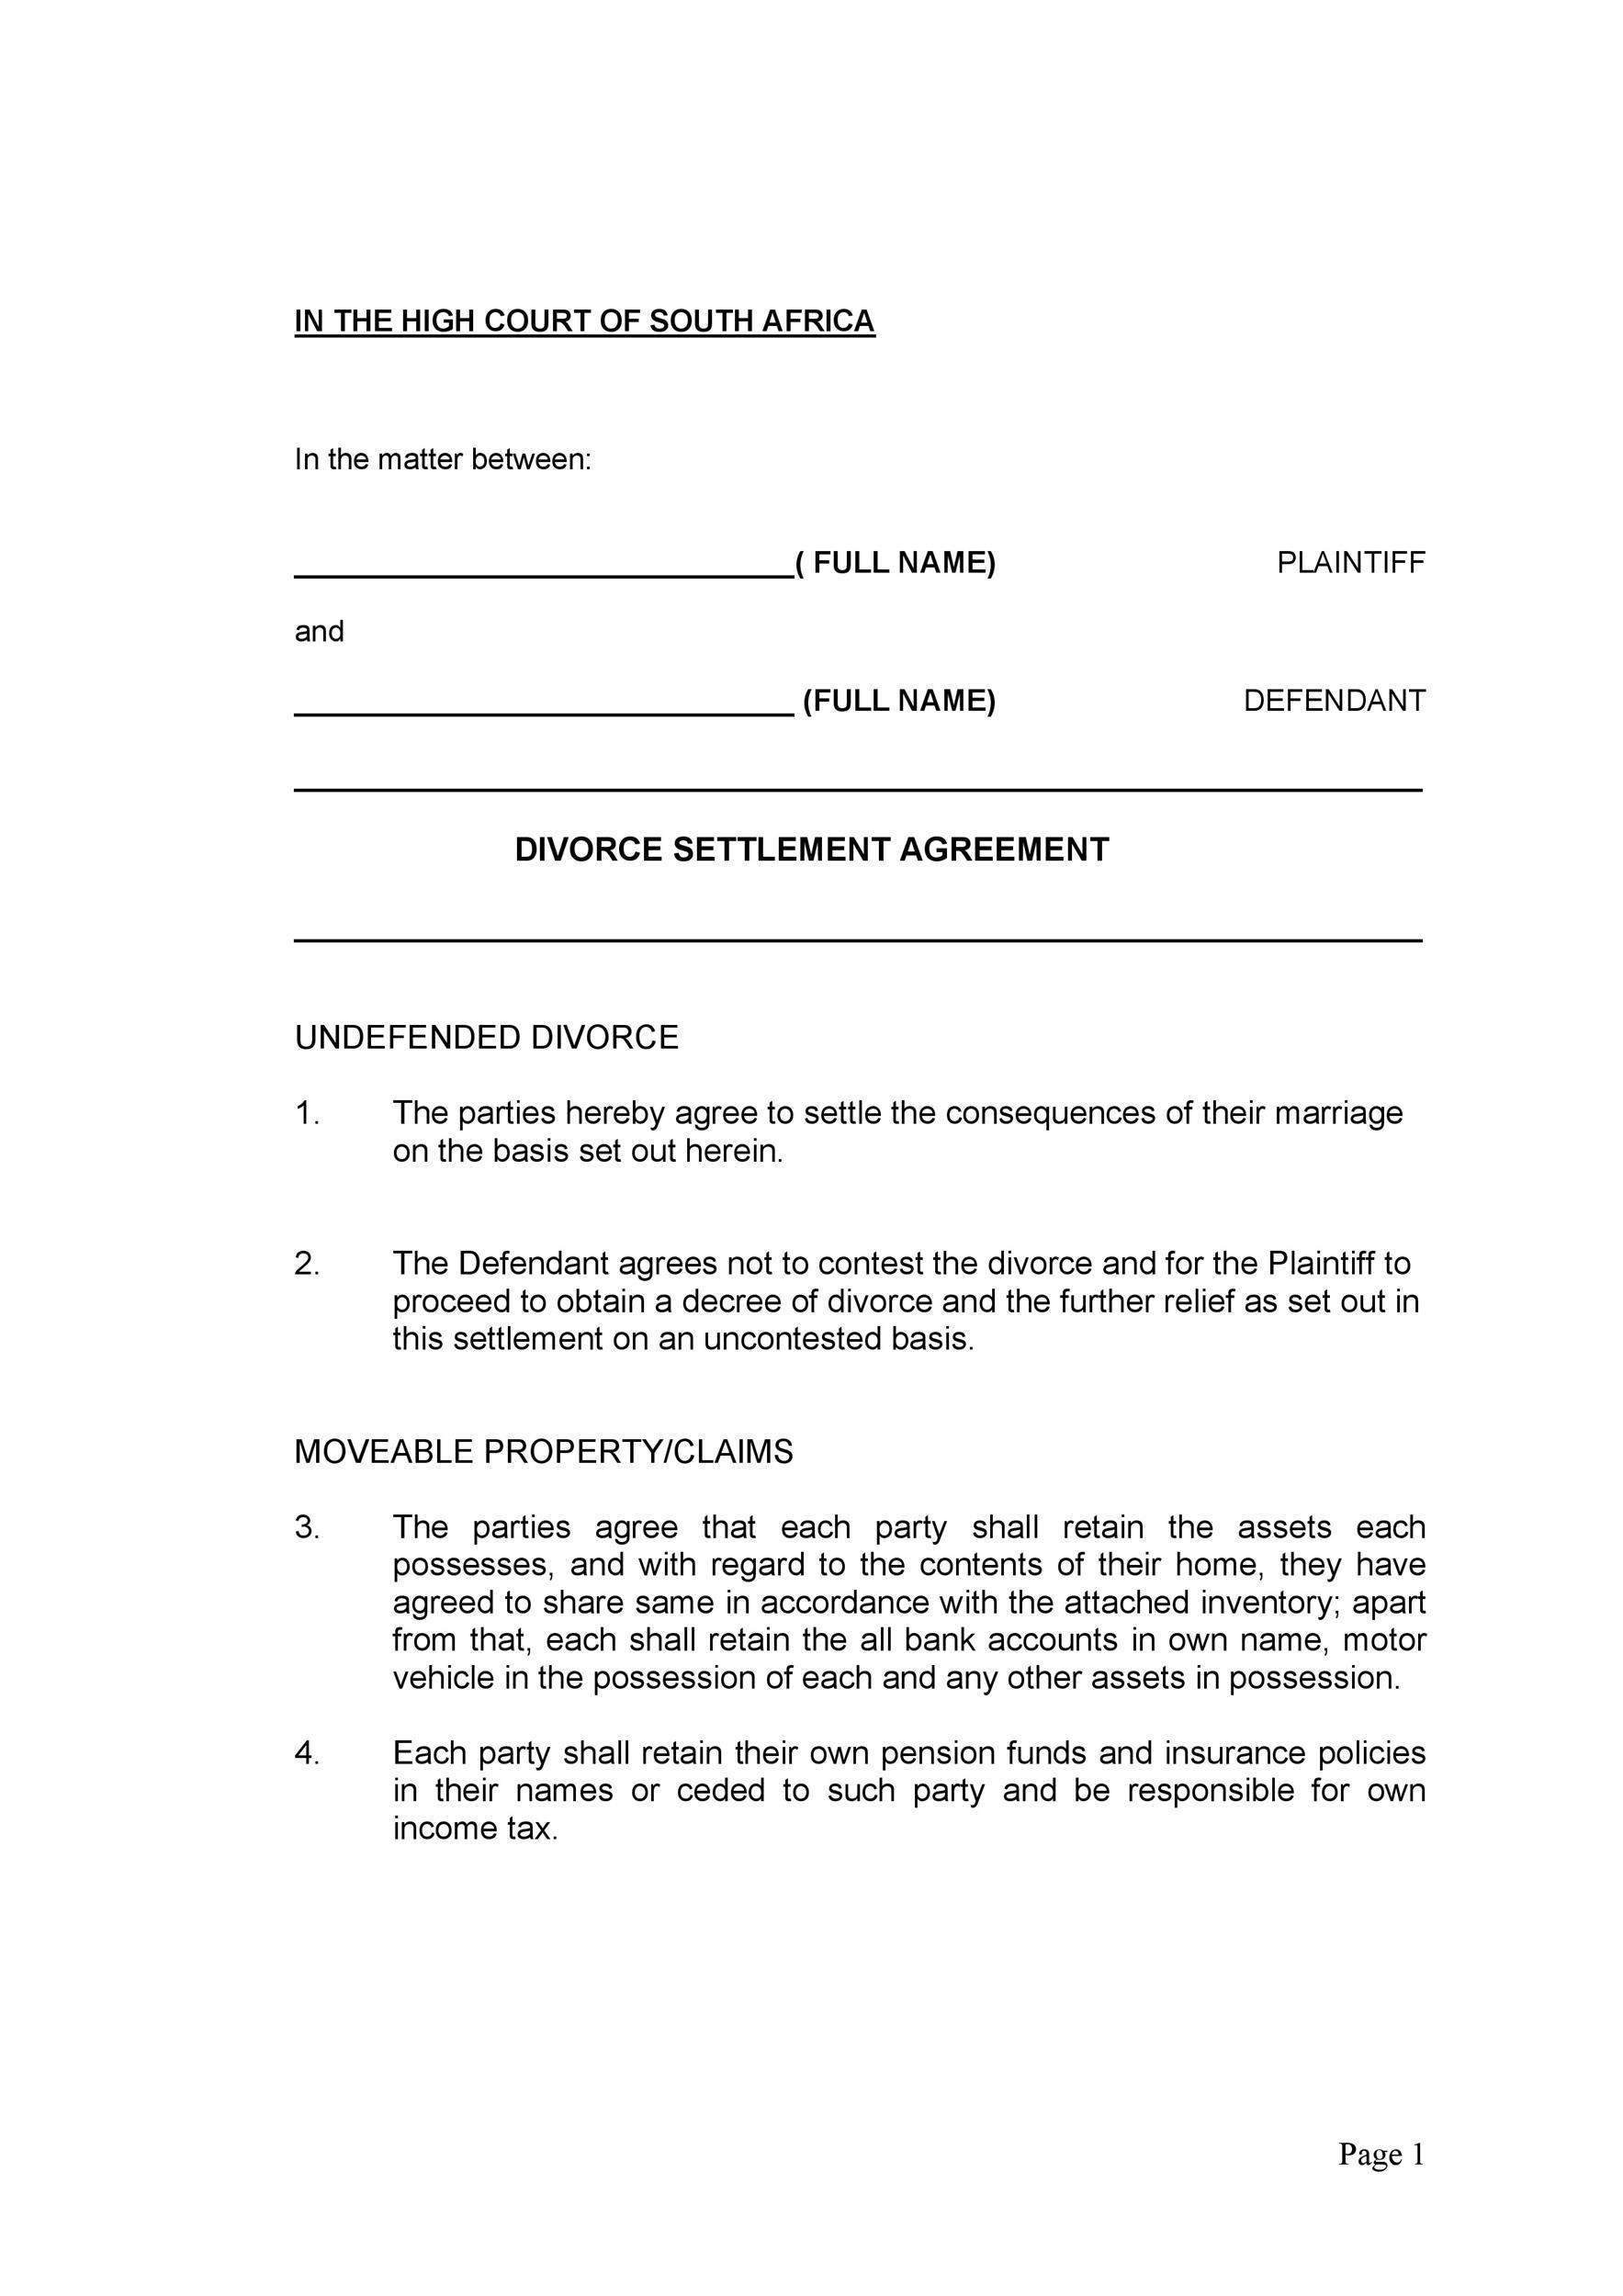 Free divorce agreement 05